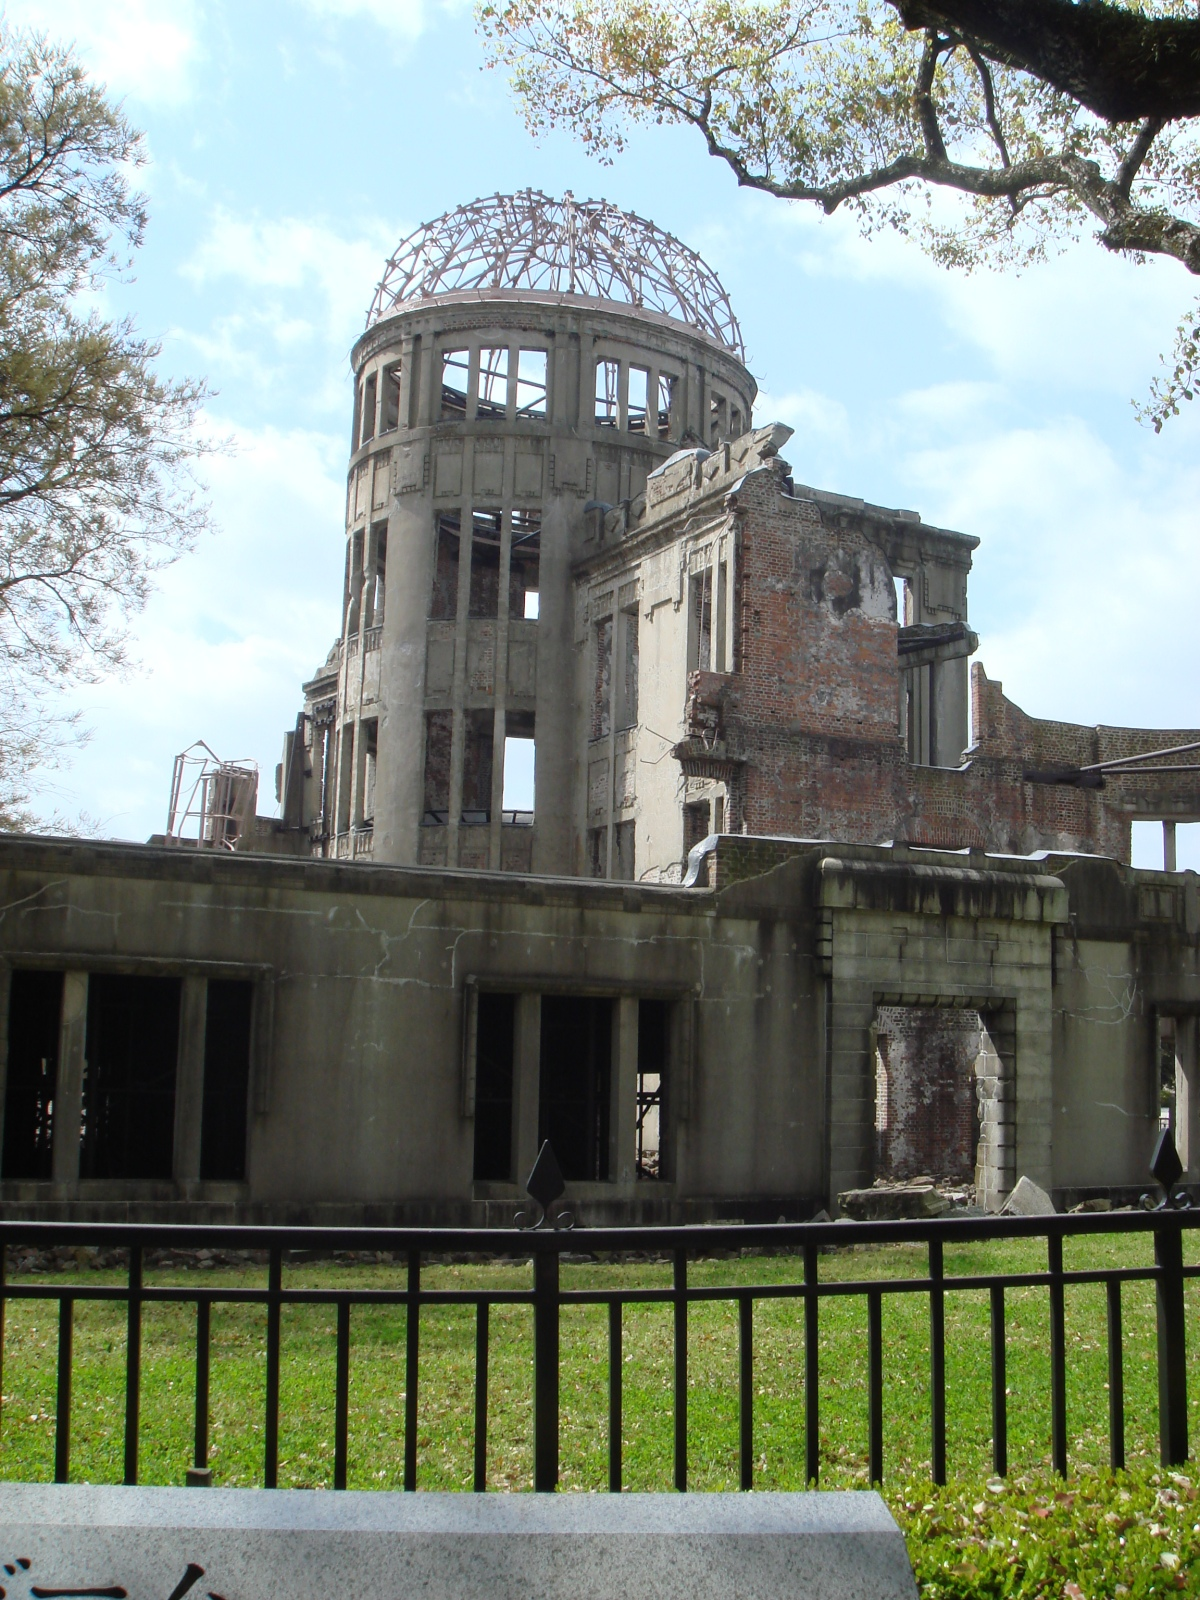 Memories of a visit to Hiroshima